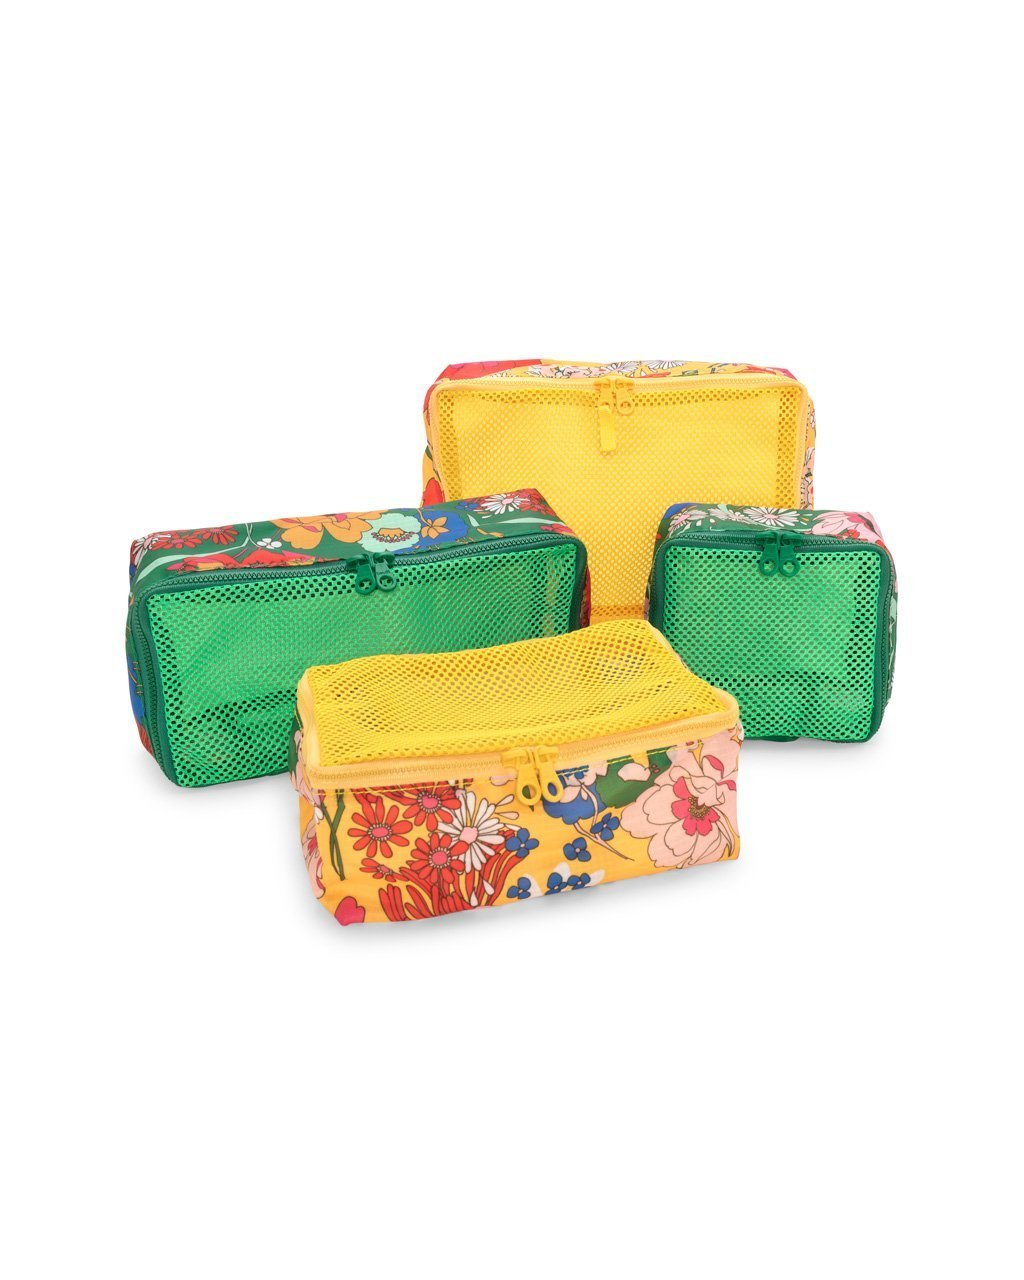 Bando Getaway Packing Cube Set, Superbloom